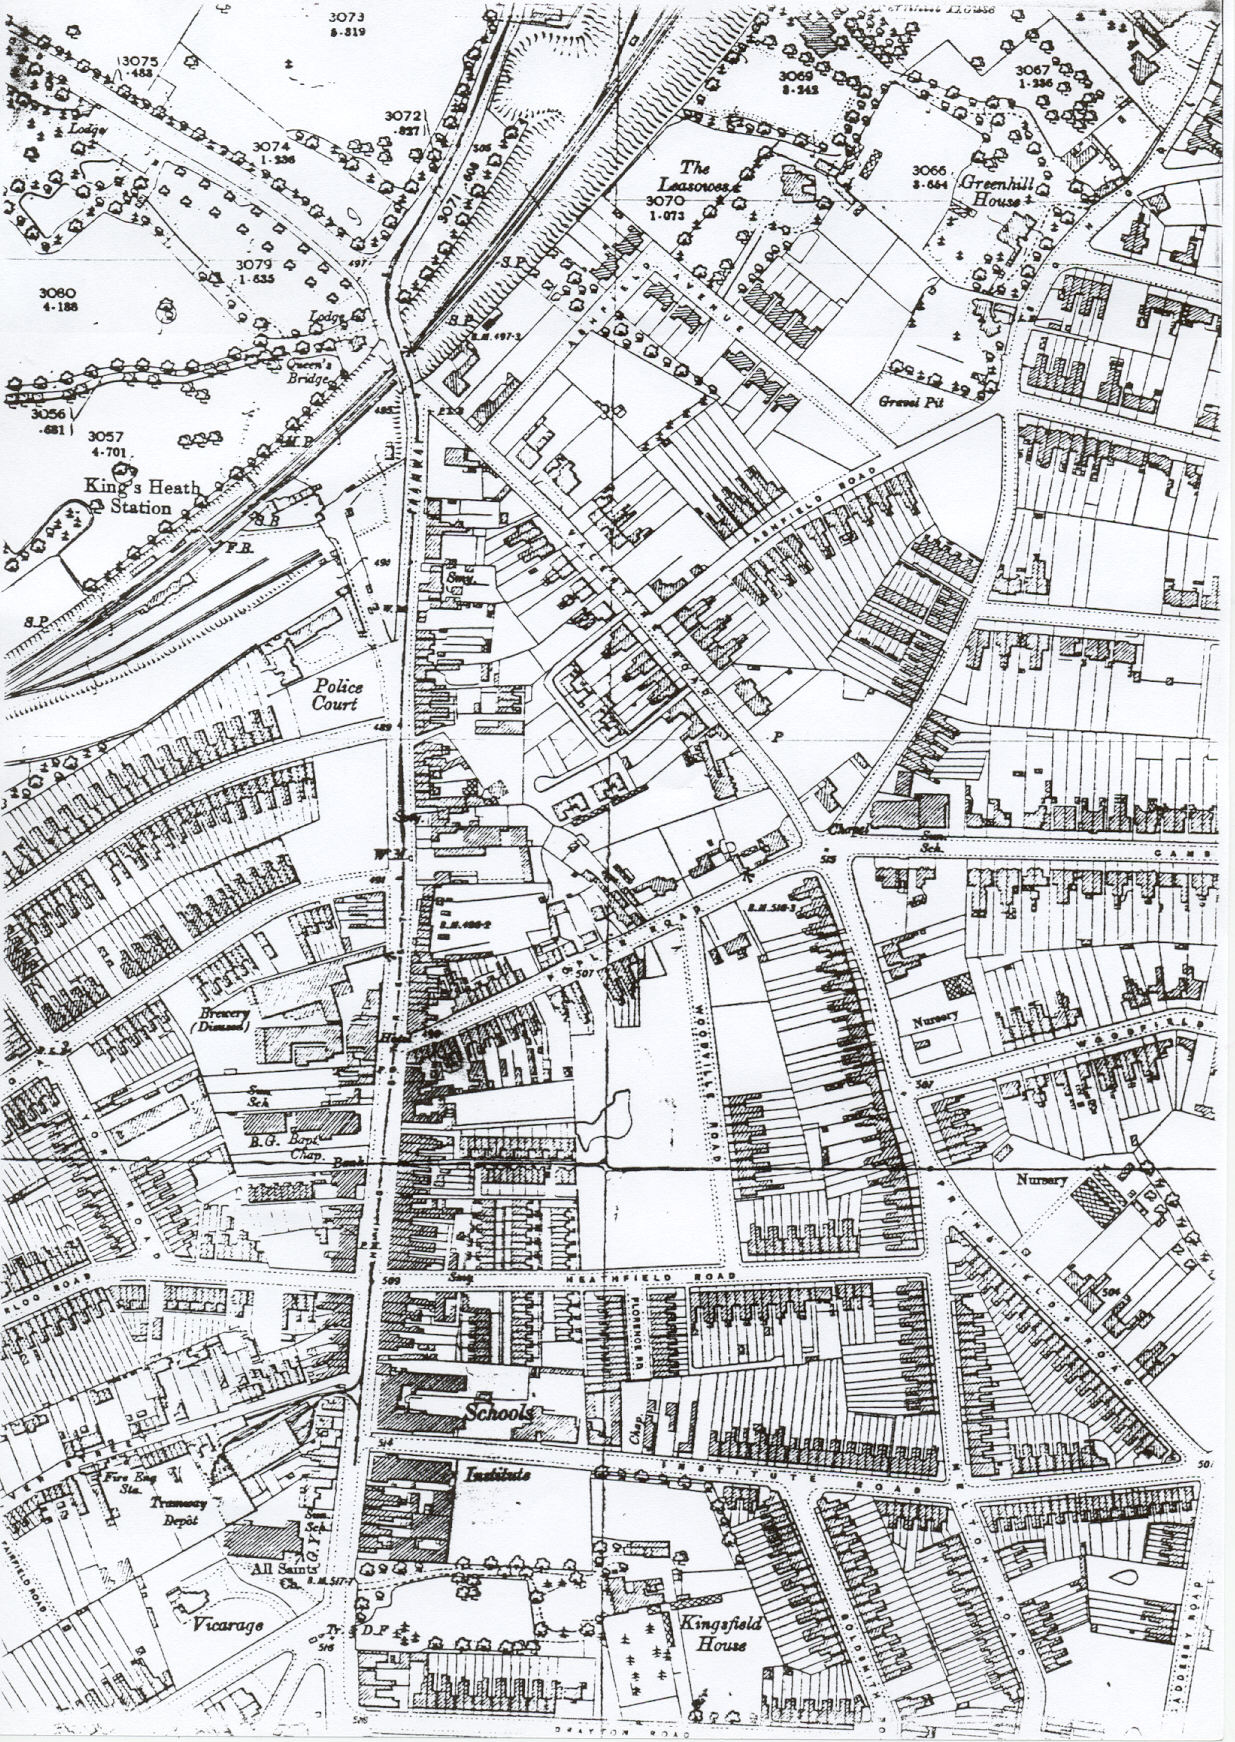 King's Heath map of 1904